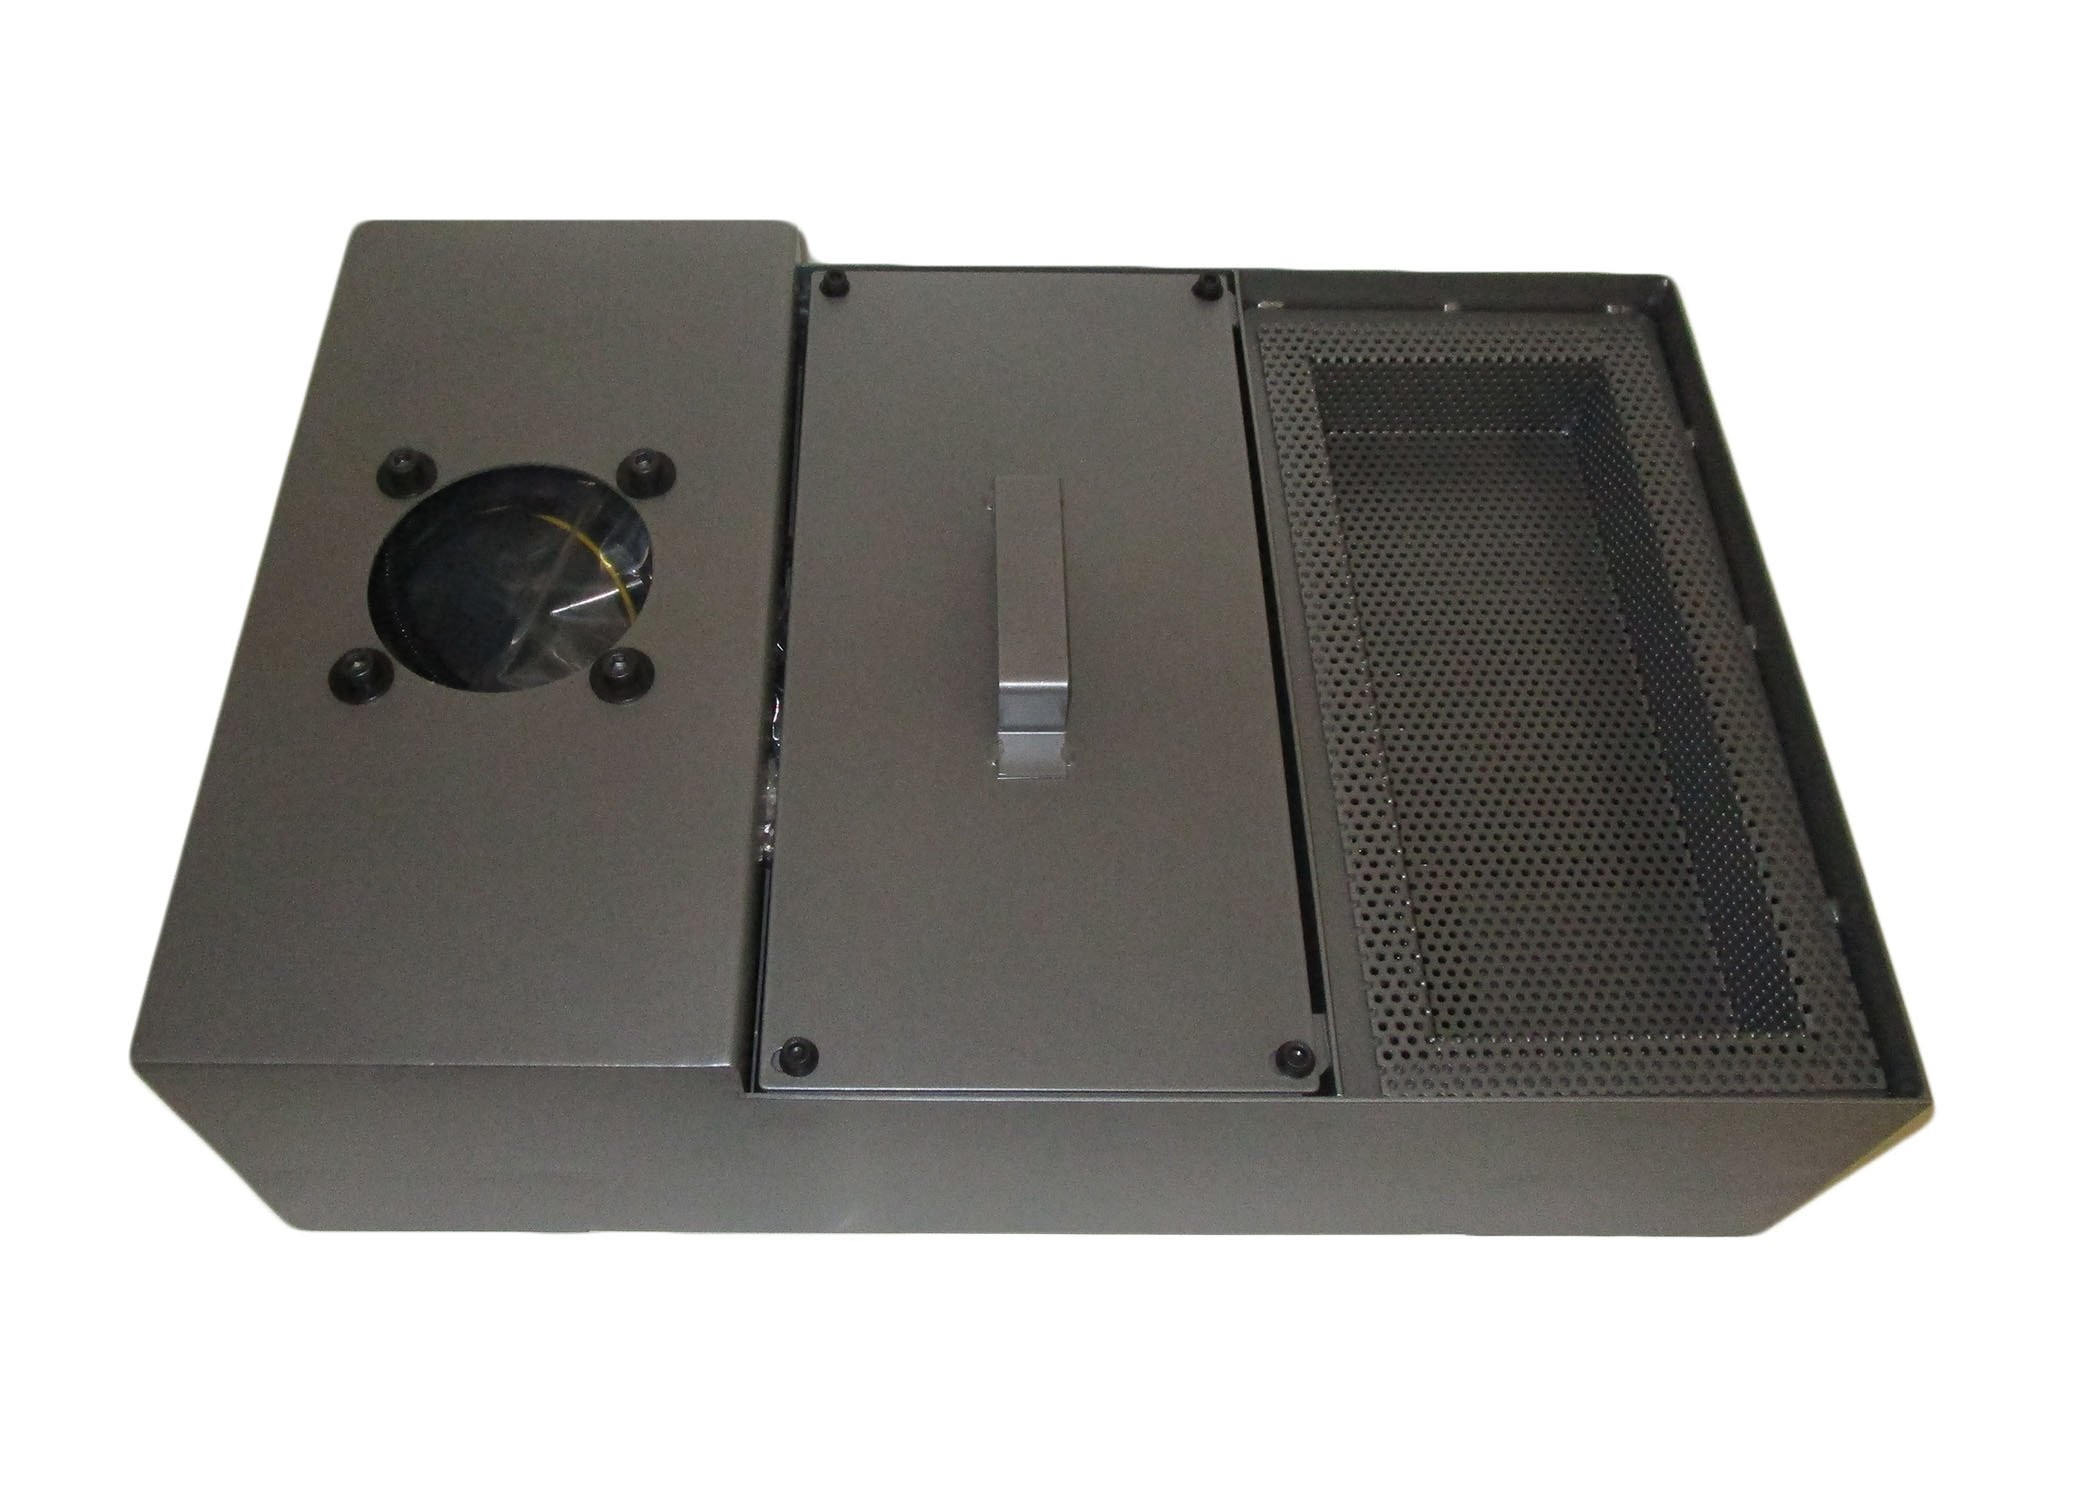 Coolant  System With Motor and Tray for JTM949EVS and JTM-1050EVS Mills